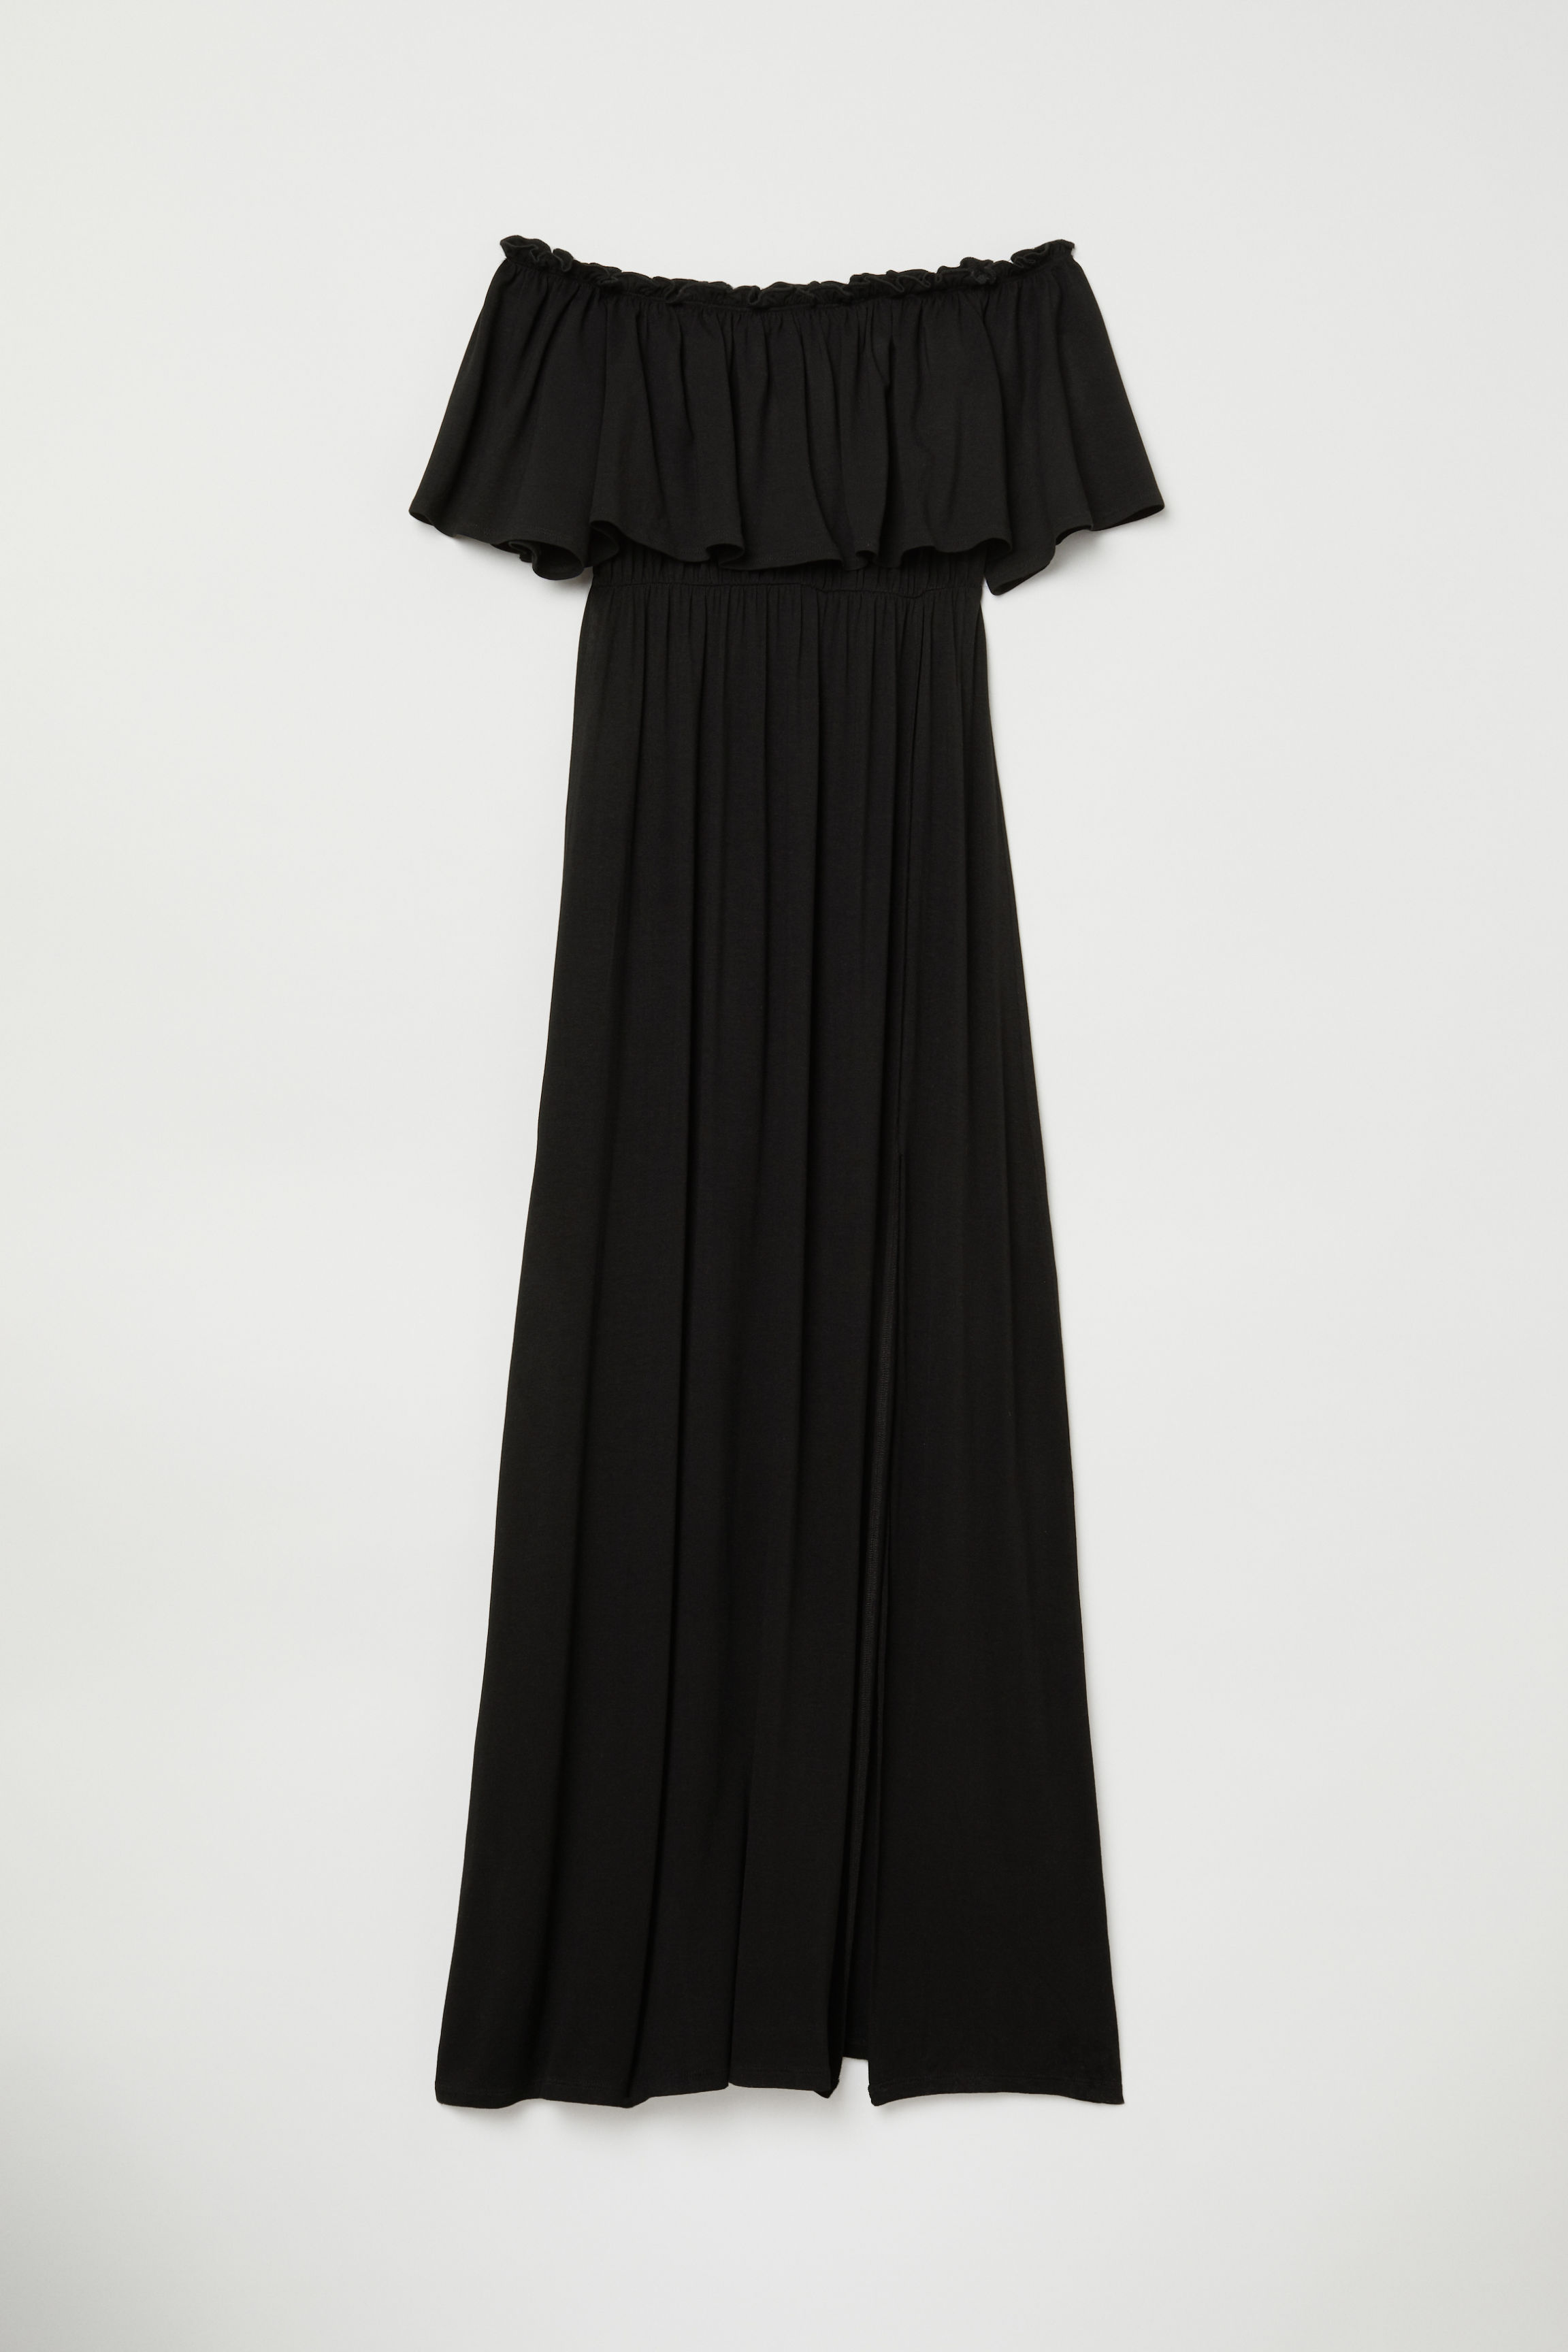 2012de7b48d Off-the-shoulder Dress - Black - Ladies